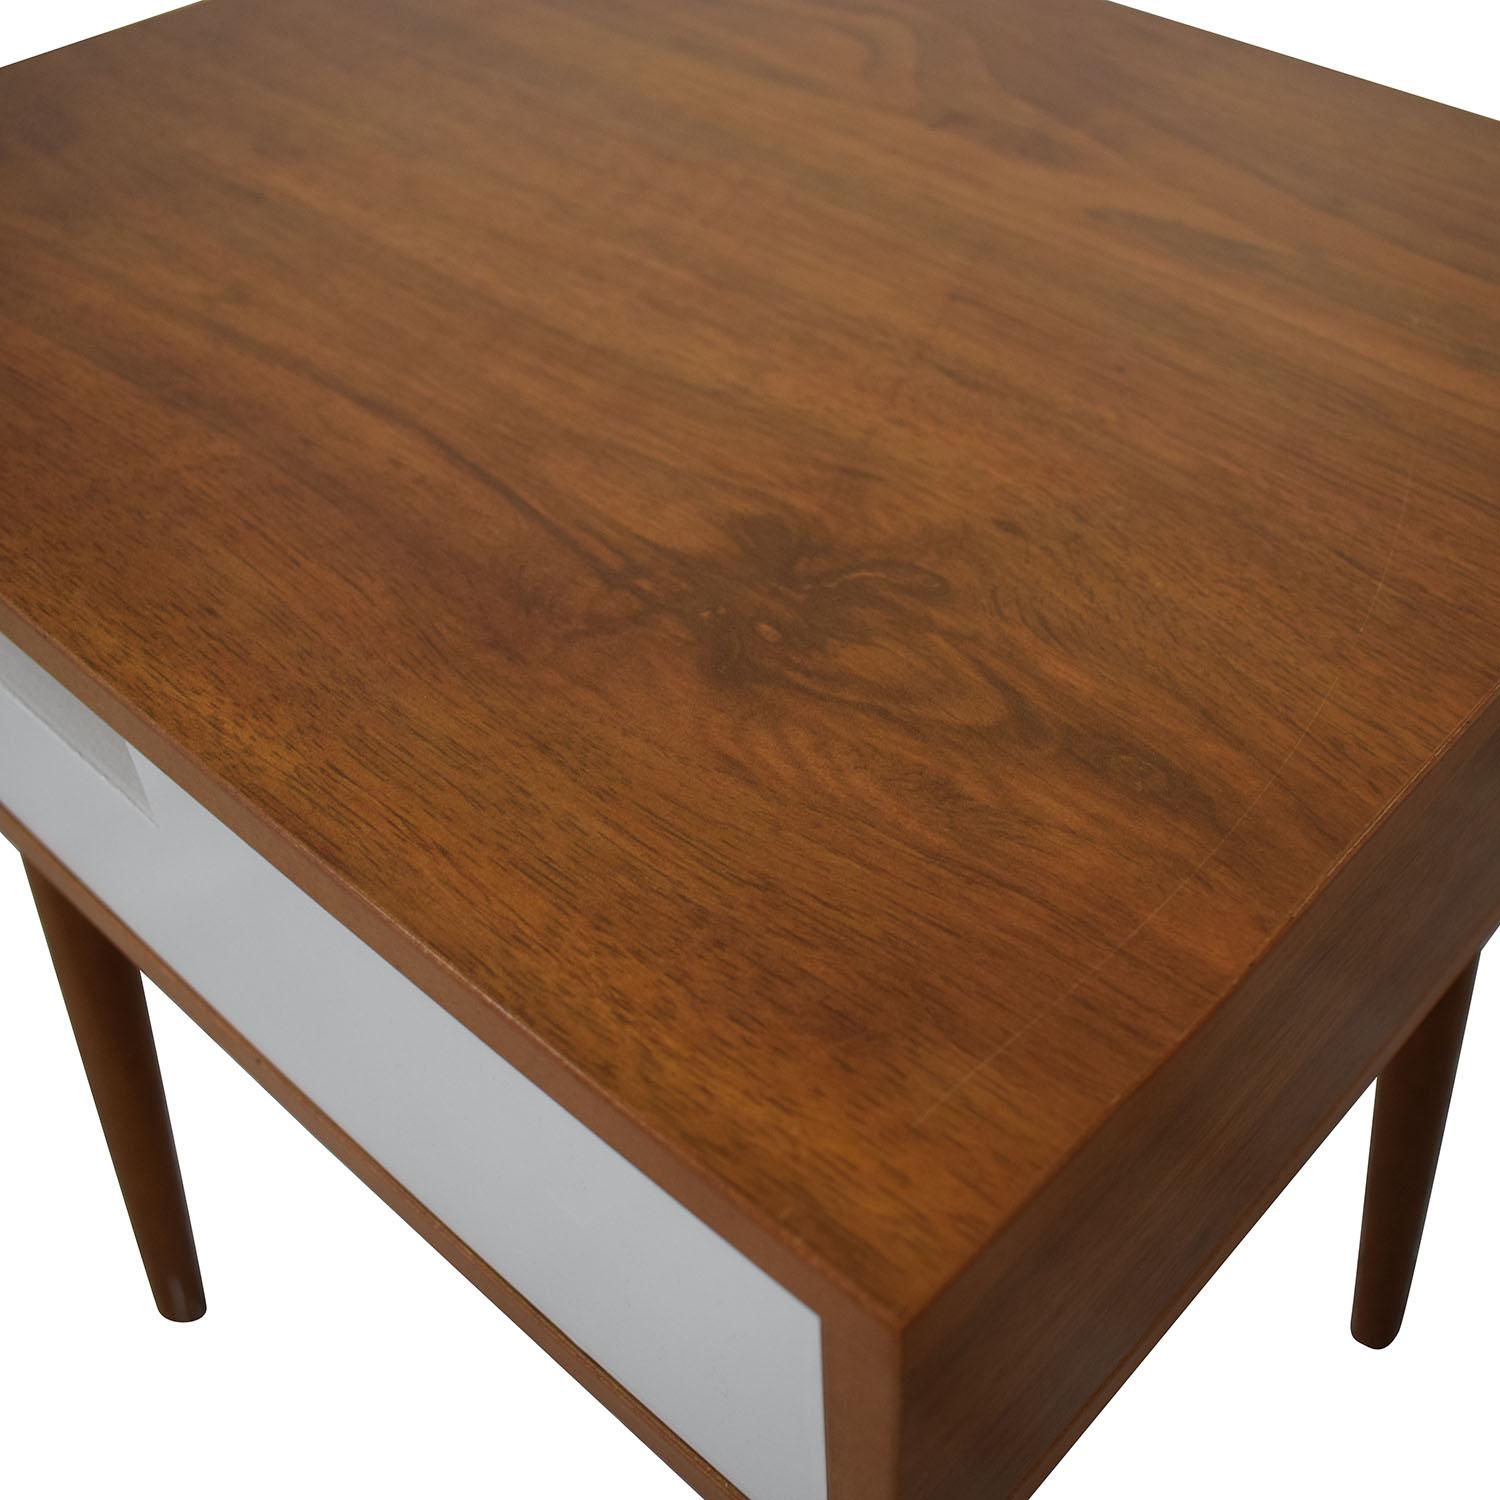 Wood Bedside Tables second hand